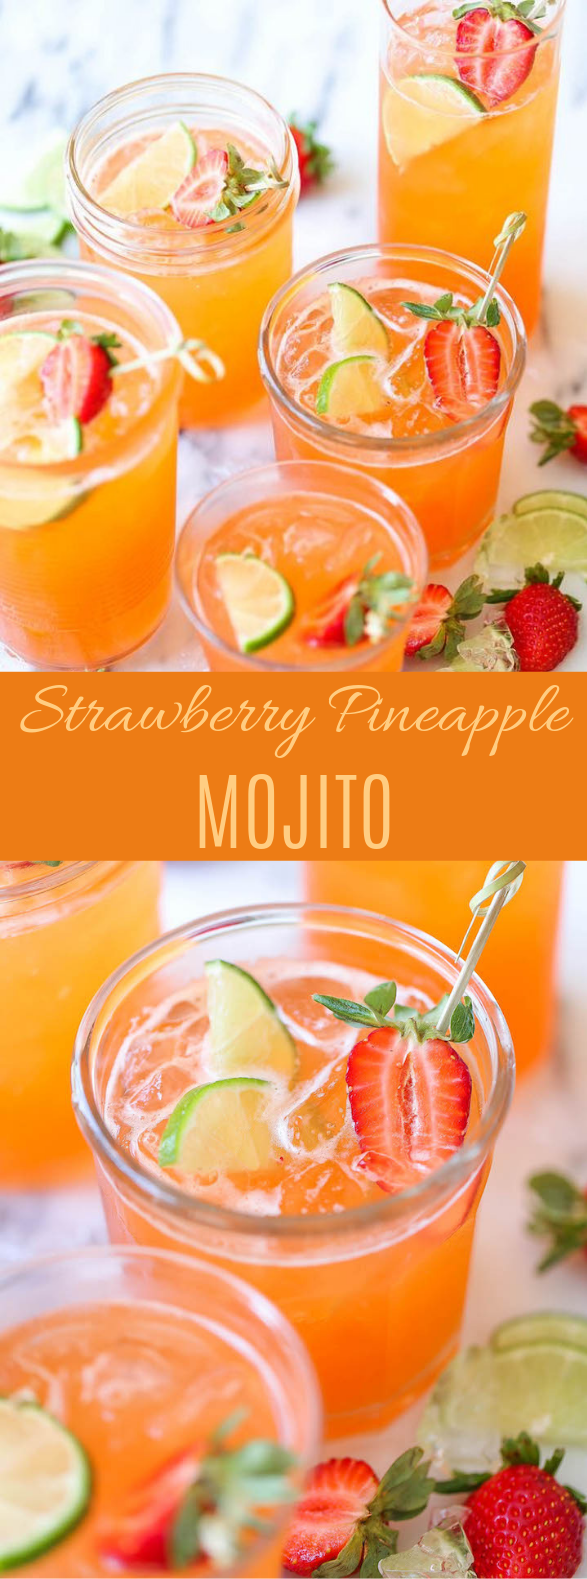 Strawberry Pineapple Mojito #cocktail #summerdrink